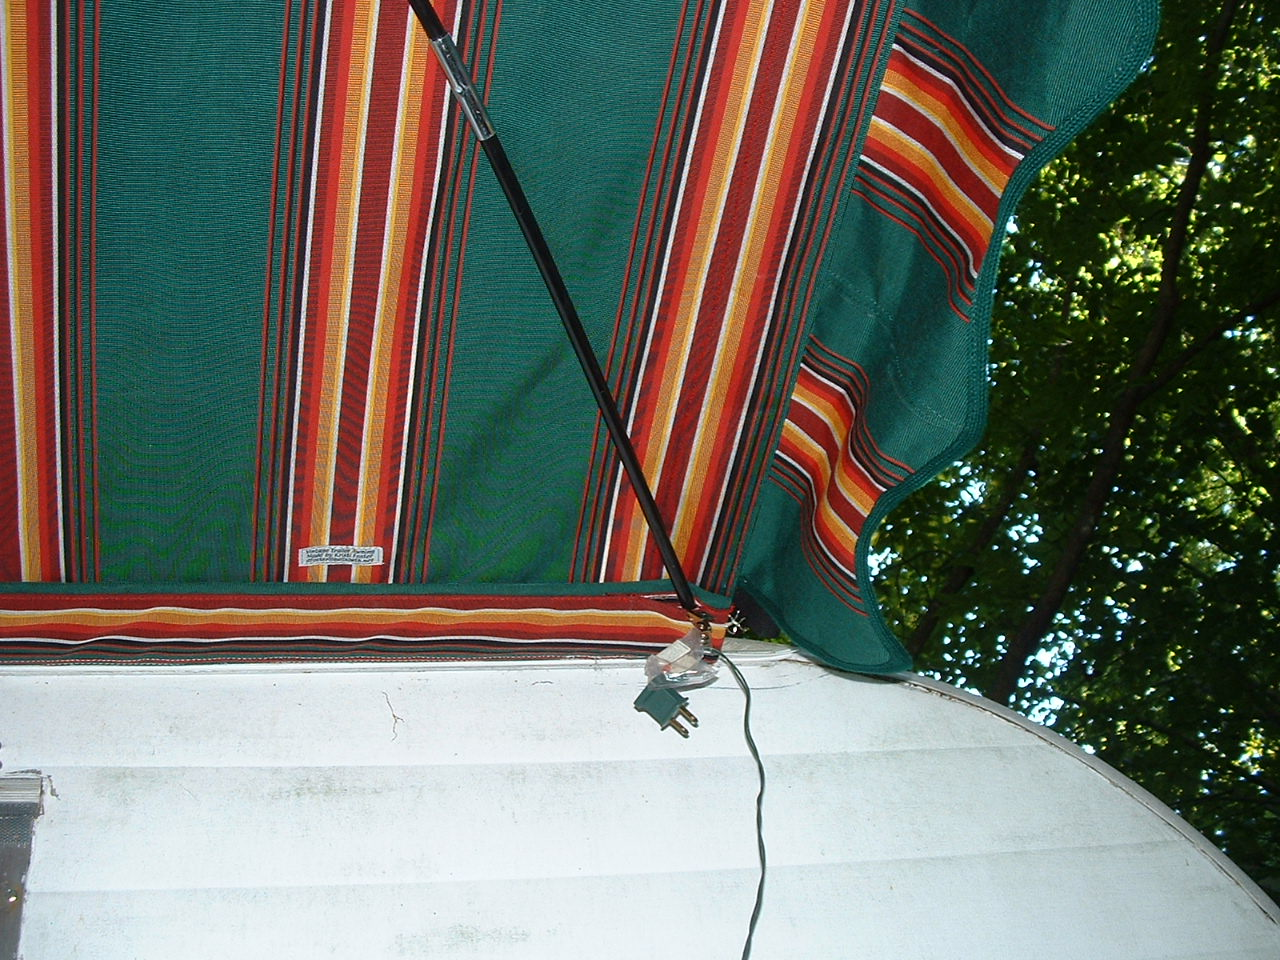 Vintage Awnings New Optional Features On Vintage Trailer